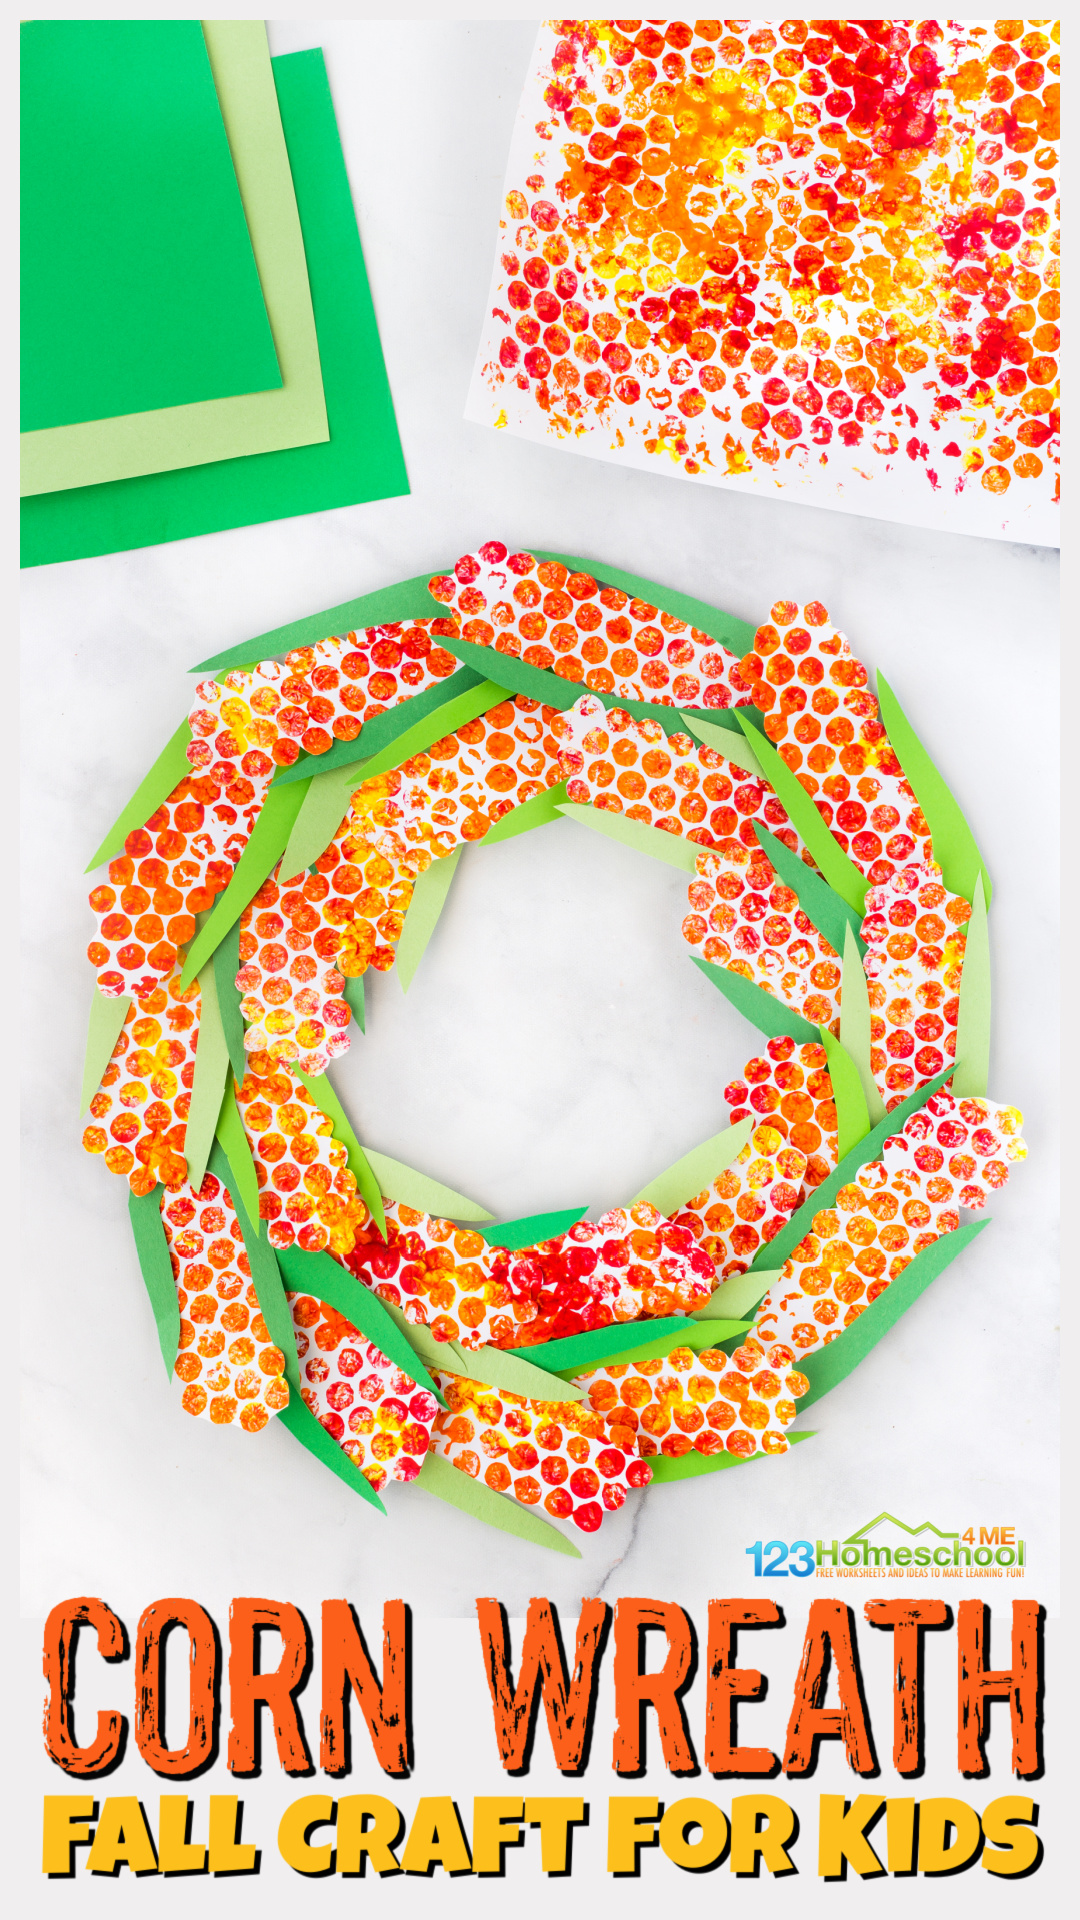 Looking for a fun-to-makeAutumn craft for kids? This beautifulcorn wreath craft uses such a fun technique to make an Indian Corn construction paper and paint craft for toddler, preschool, pre-k, kindergarten, first grade, 2nd grade, and 3rd graders too. Thisfall craft for preschoolers is sure to brighten up your room, window, or front door throughout September, October, and even November for Pre-k Thanksgiving Crafts.